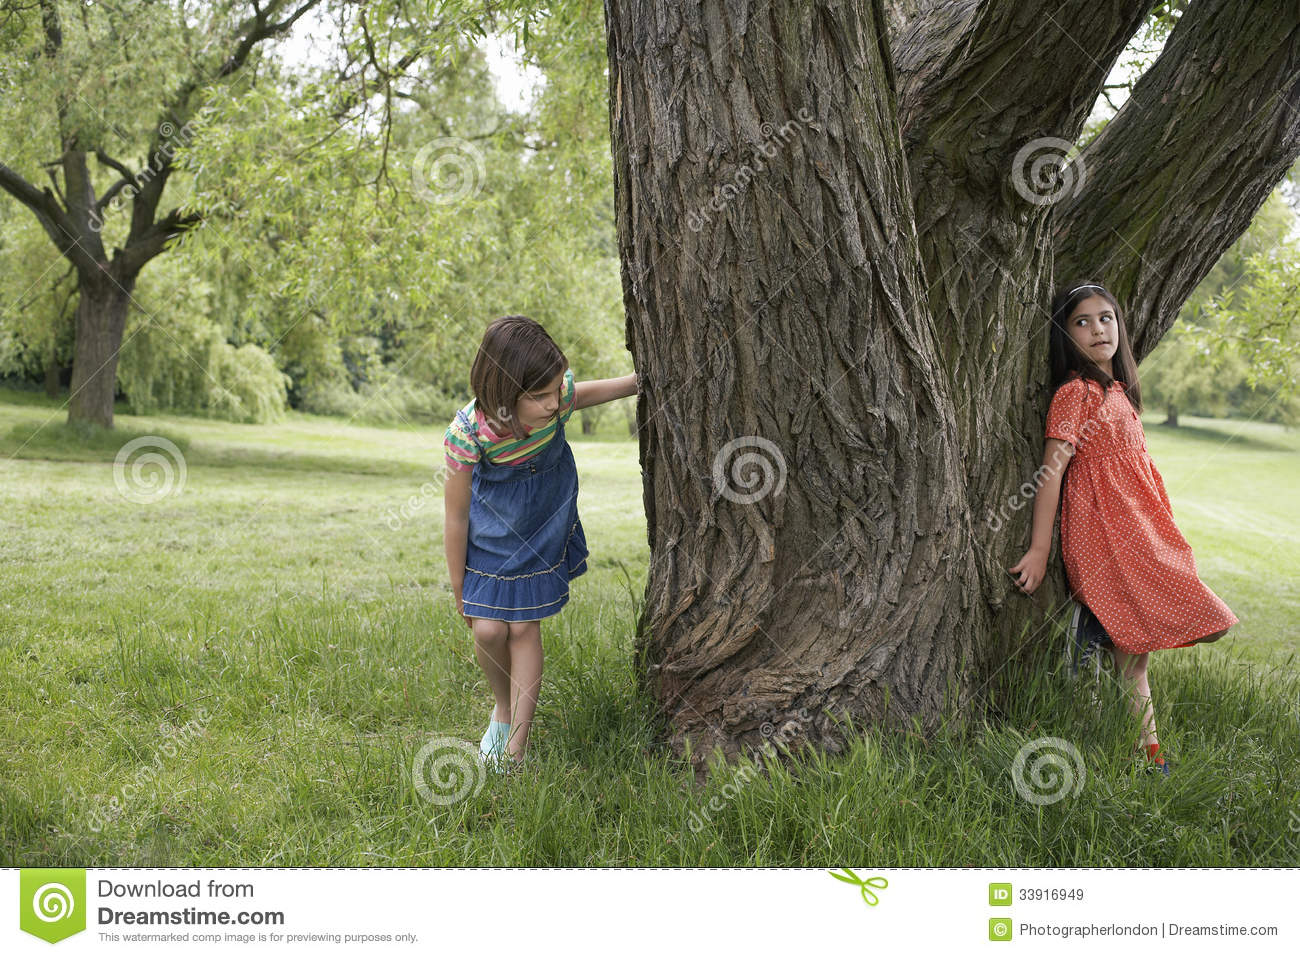 girls playing hide and seek by tree stock image image of childhood park 33916949. Black Bedroom Furniture Sets. Home Design Ideas